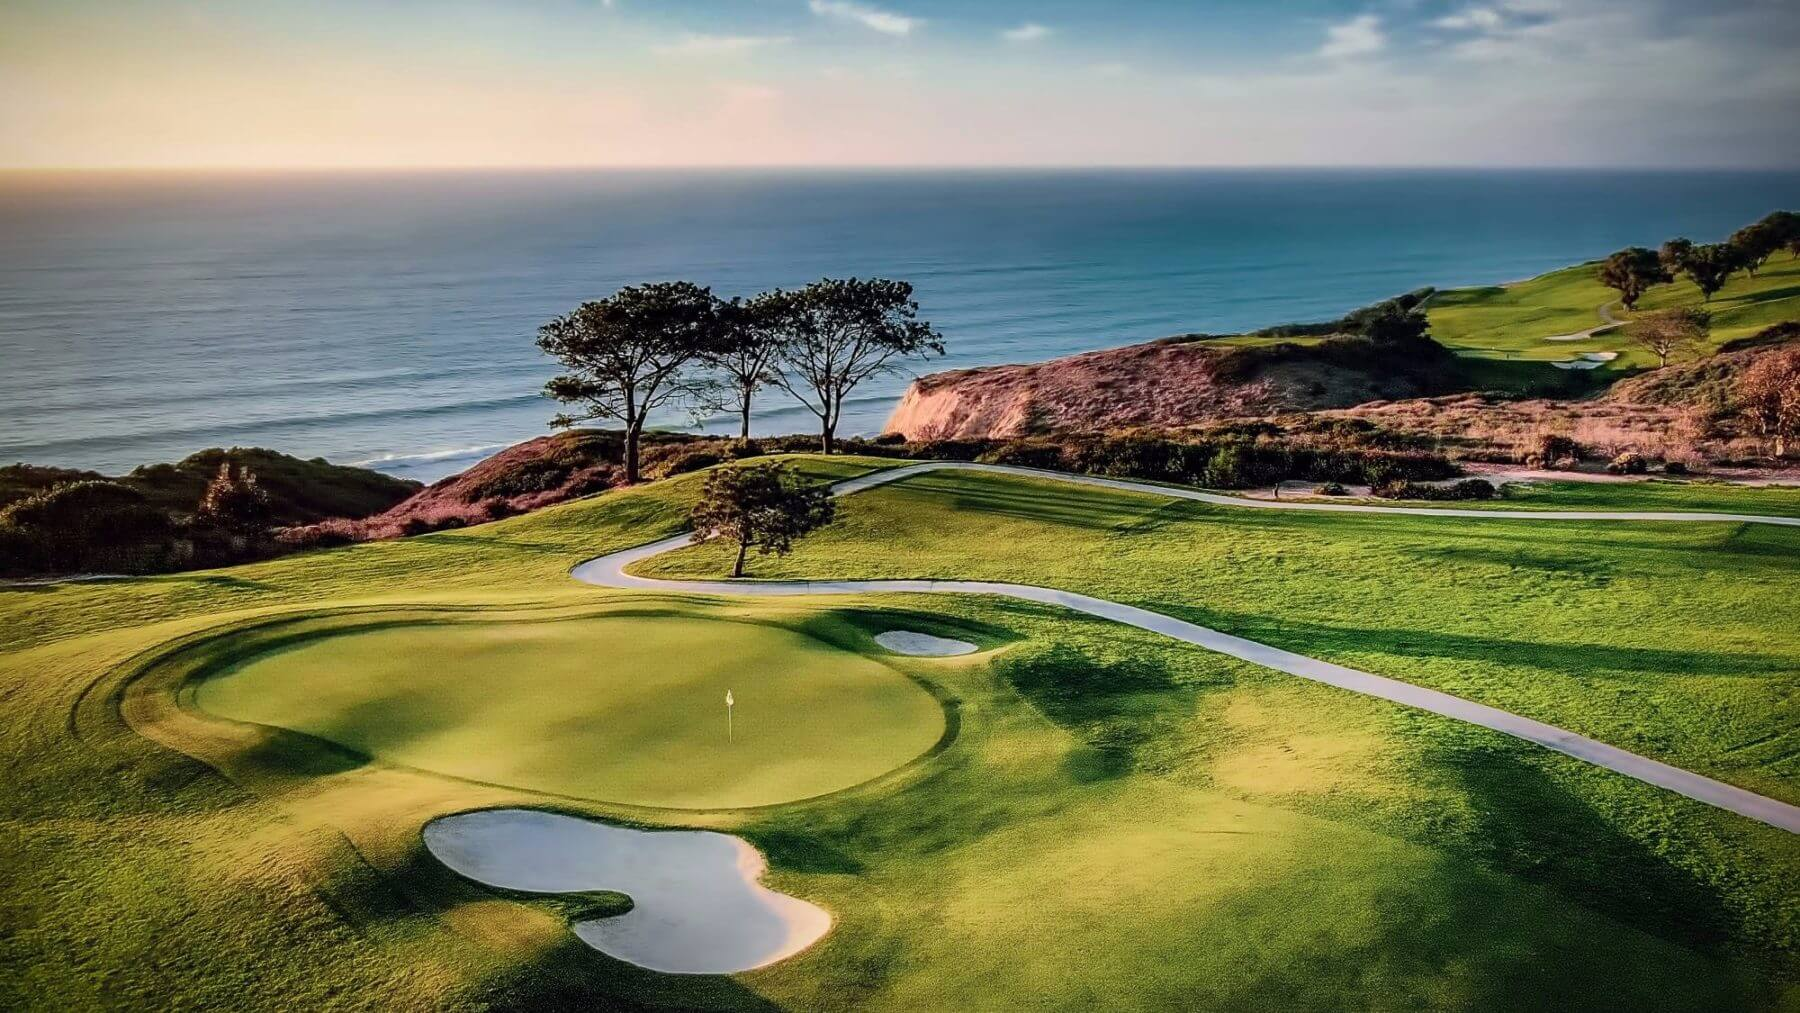 Aerial image of Torrey Pines tenth hole and Pacific Ocean